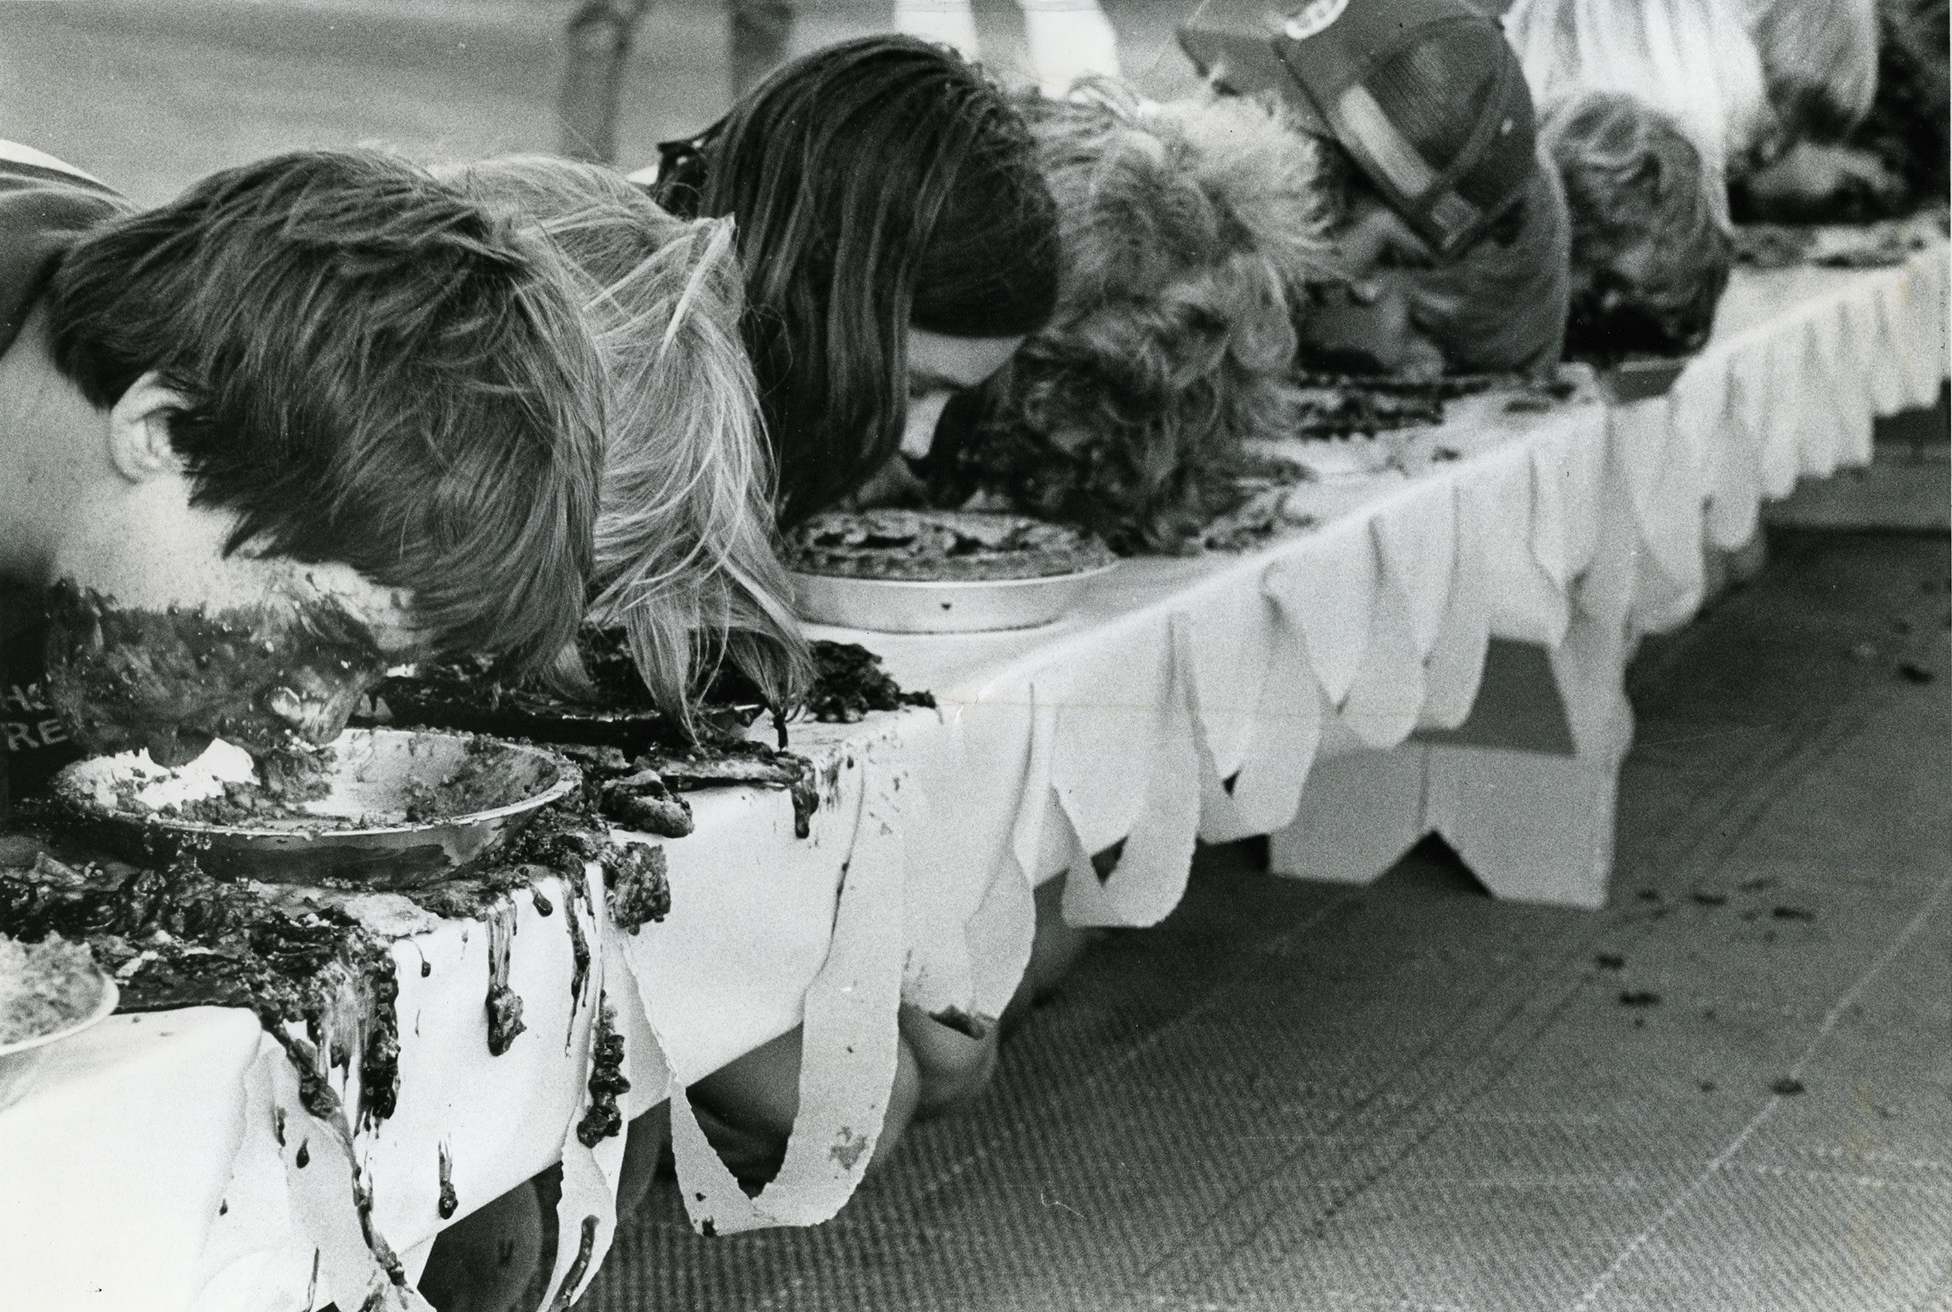 Once (this is 1978) there was a raspberry pie eating contest.